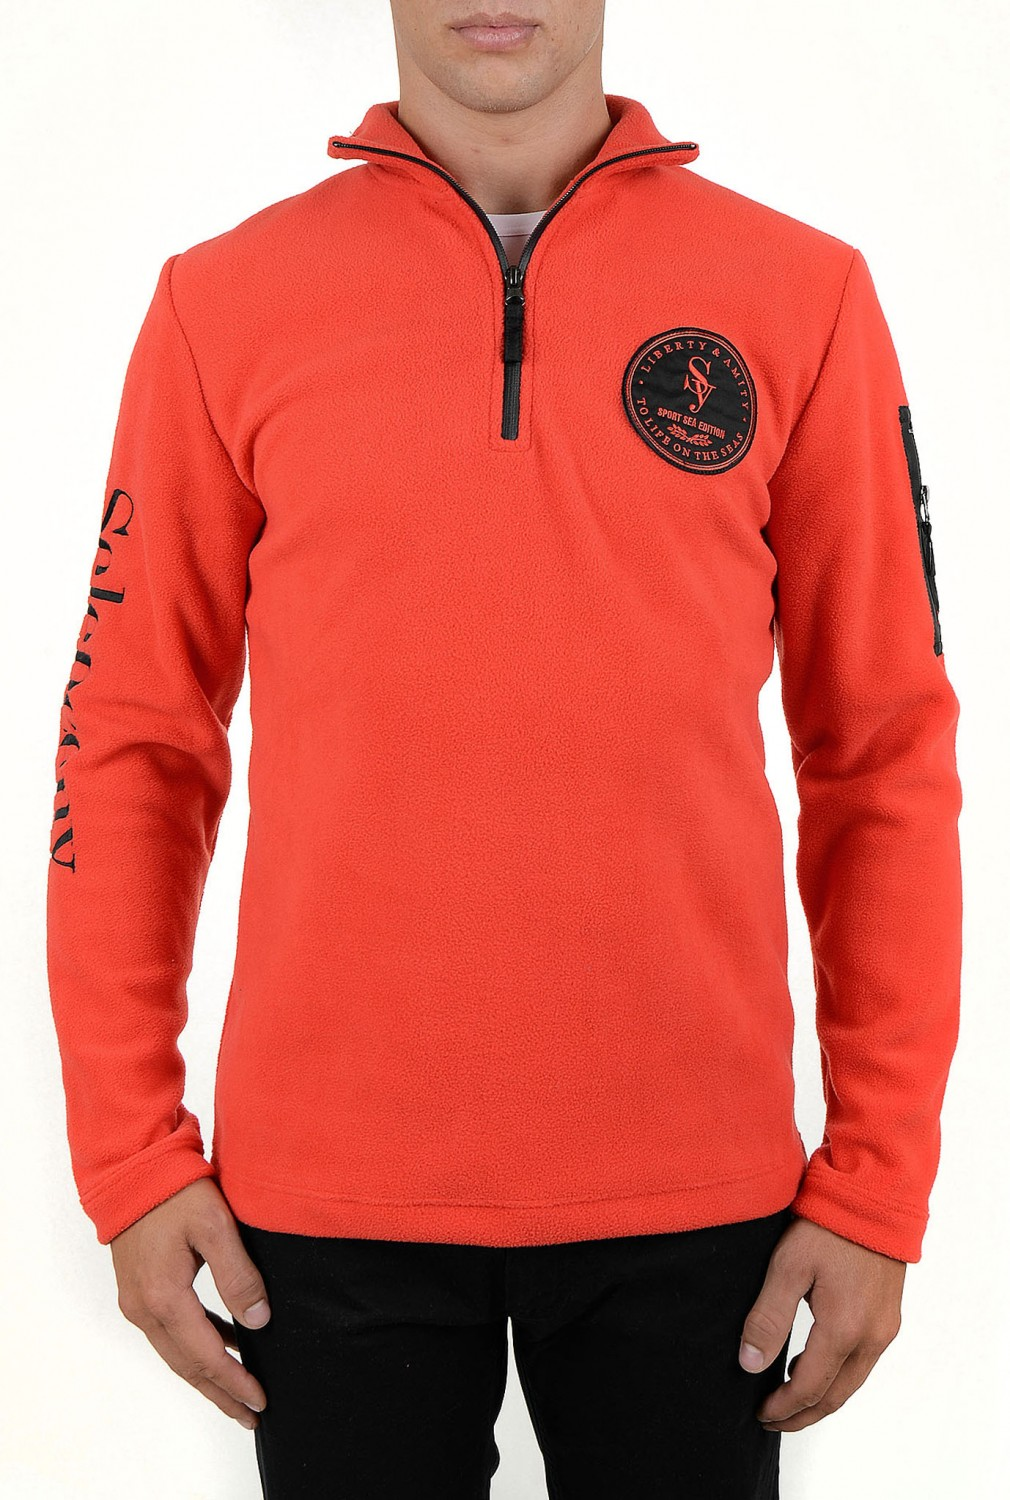 SKR006_MIKINA_FLEECE_MUZI_MEN_SWEATSHIRT (1)